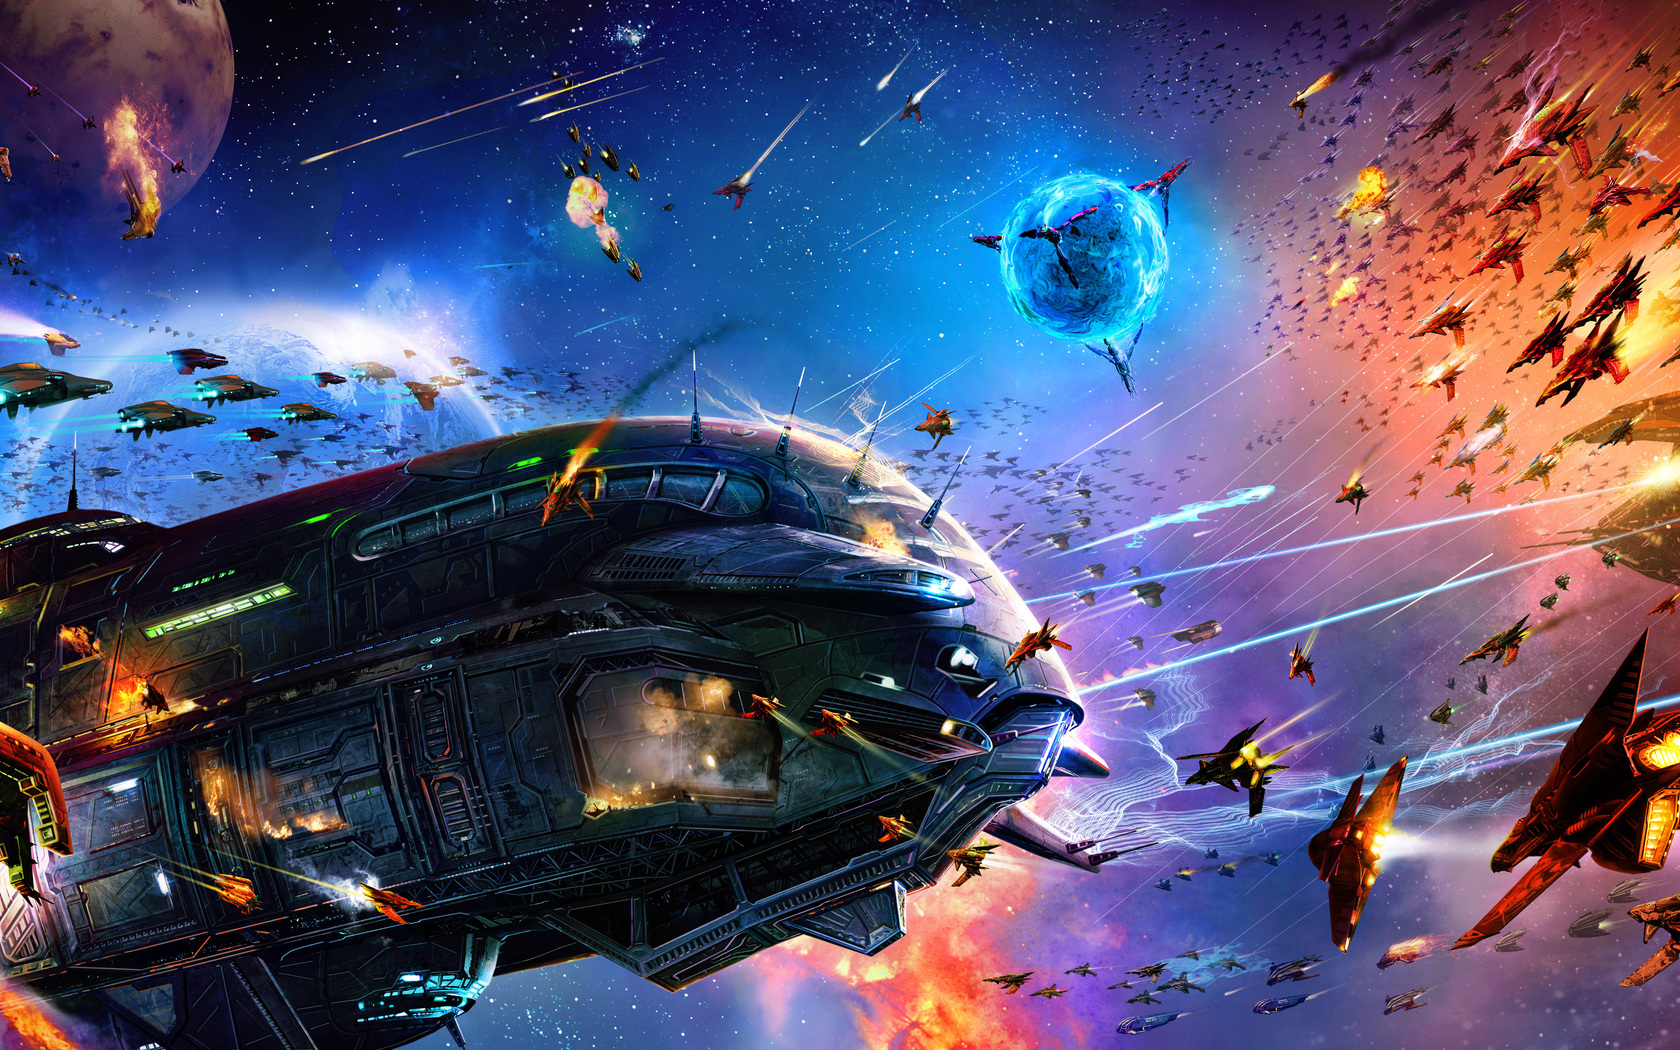 download space battle wallpaper which is under the space wallpapers 1680x1050